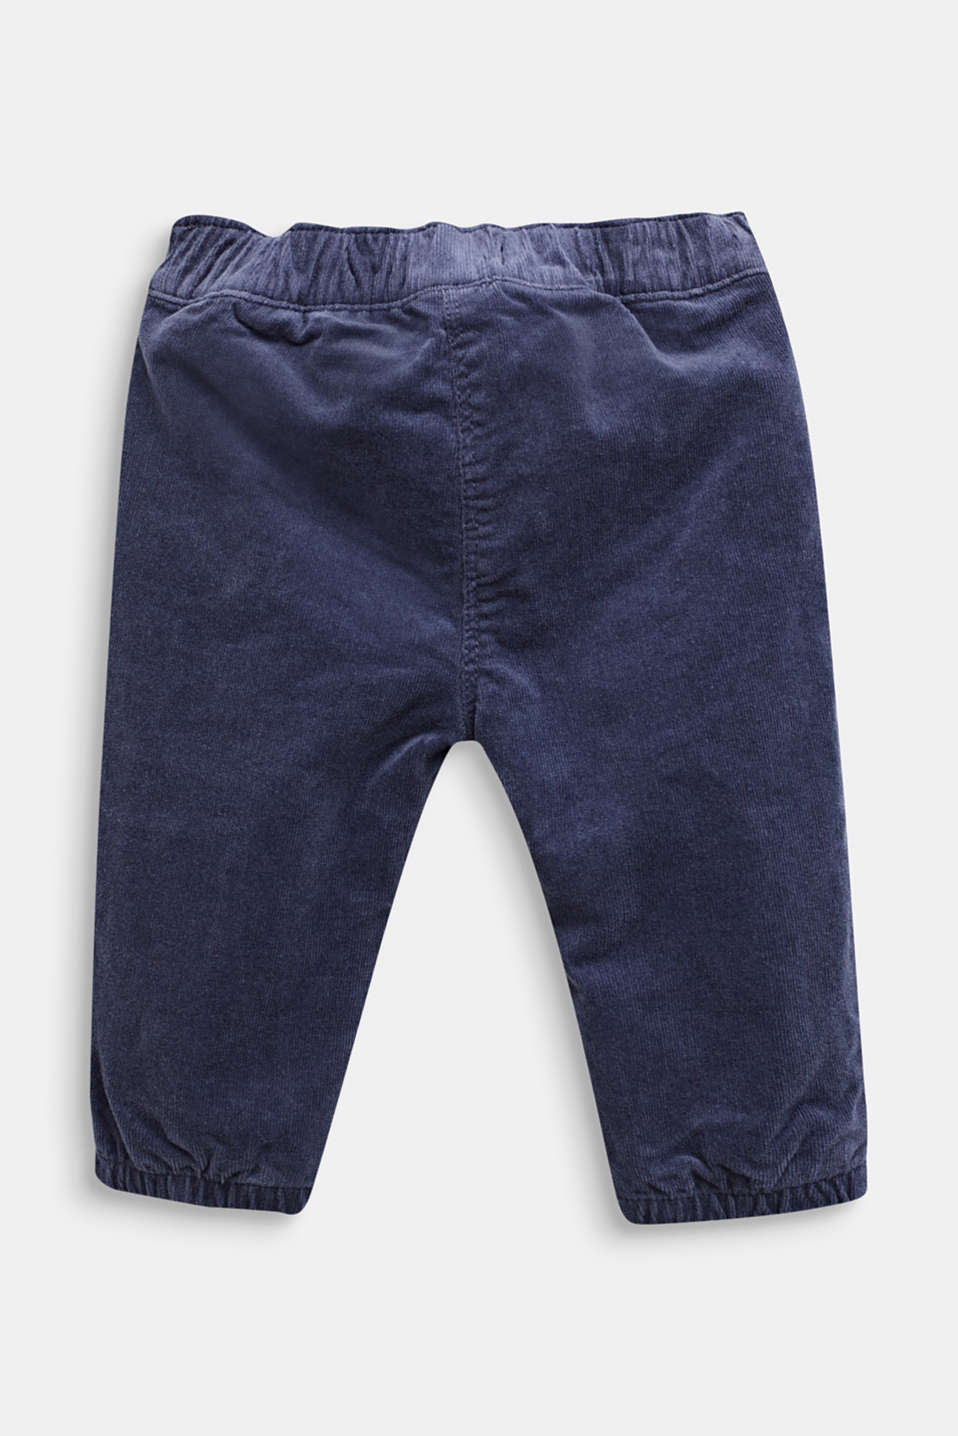 Fine needlecord trousers, LCMIDNIGHT BLUE, detail image number 2